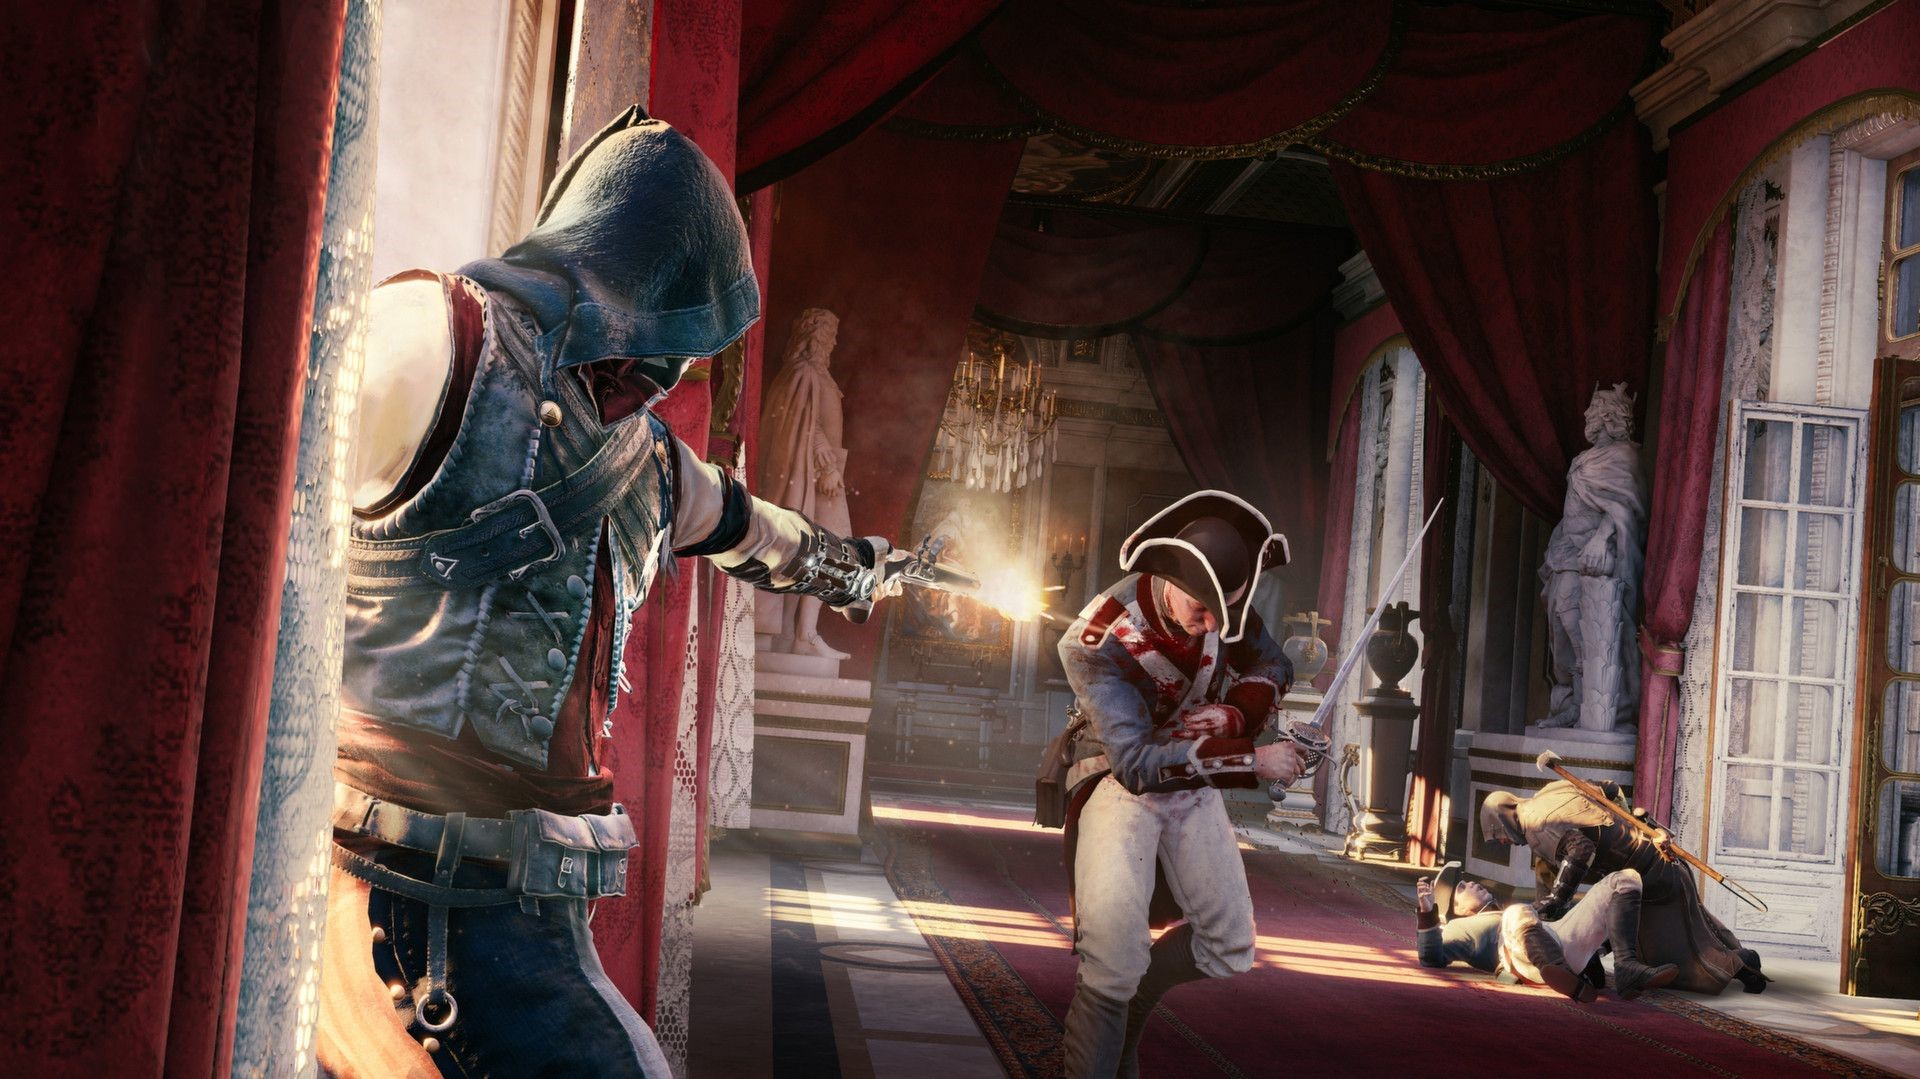 Рис. 3 - Assassin's Creed: Unity